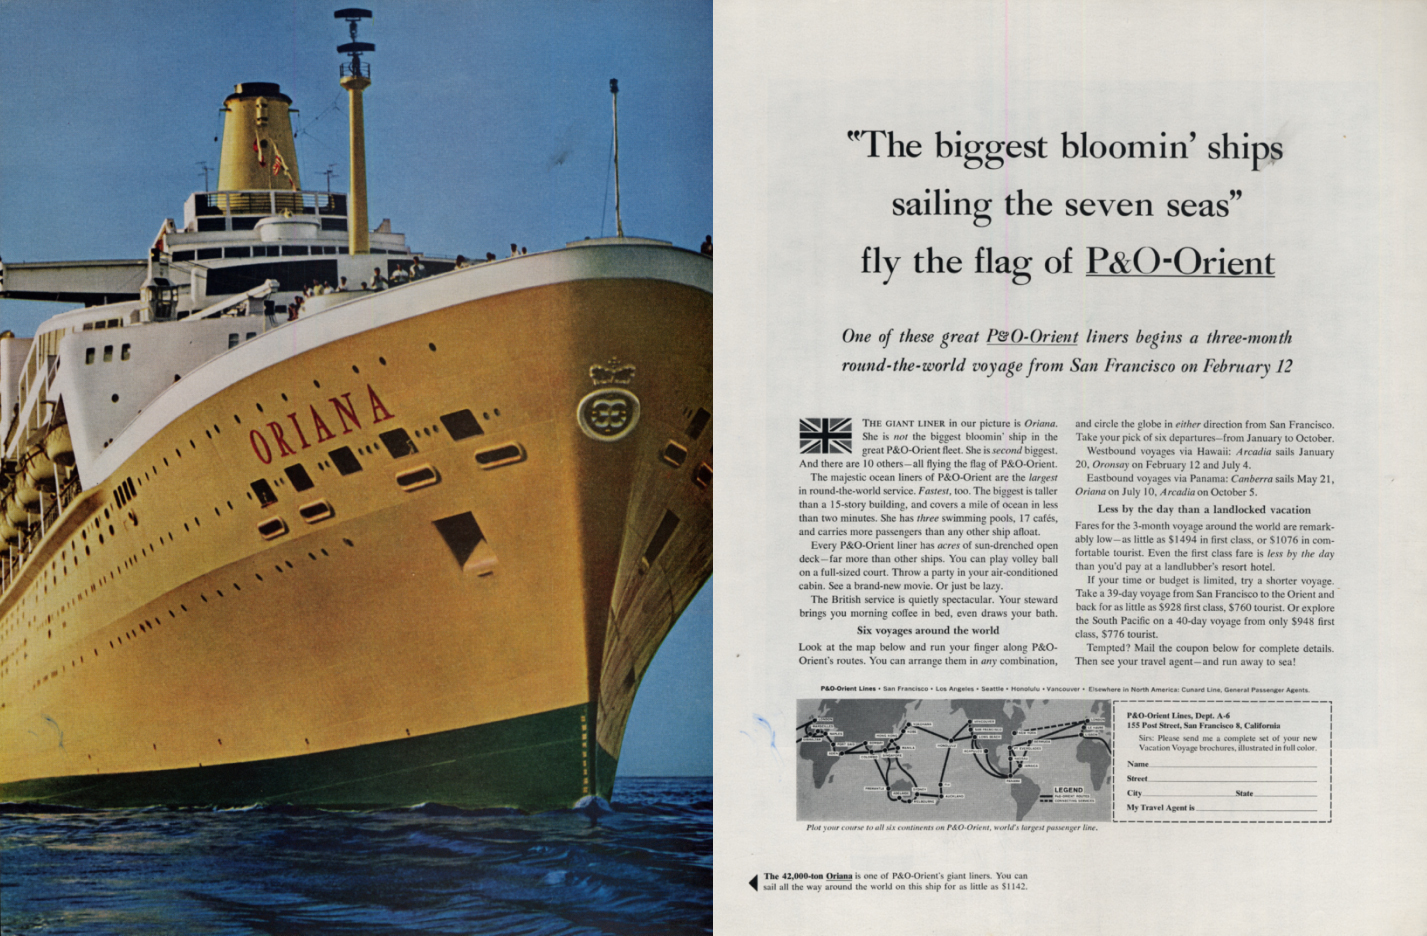 Image for Biggest bloomin' ships saling seven seas P&O-Roient S S Oriana ad 1963 H